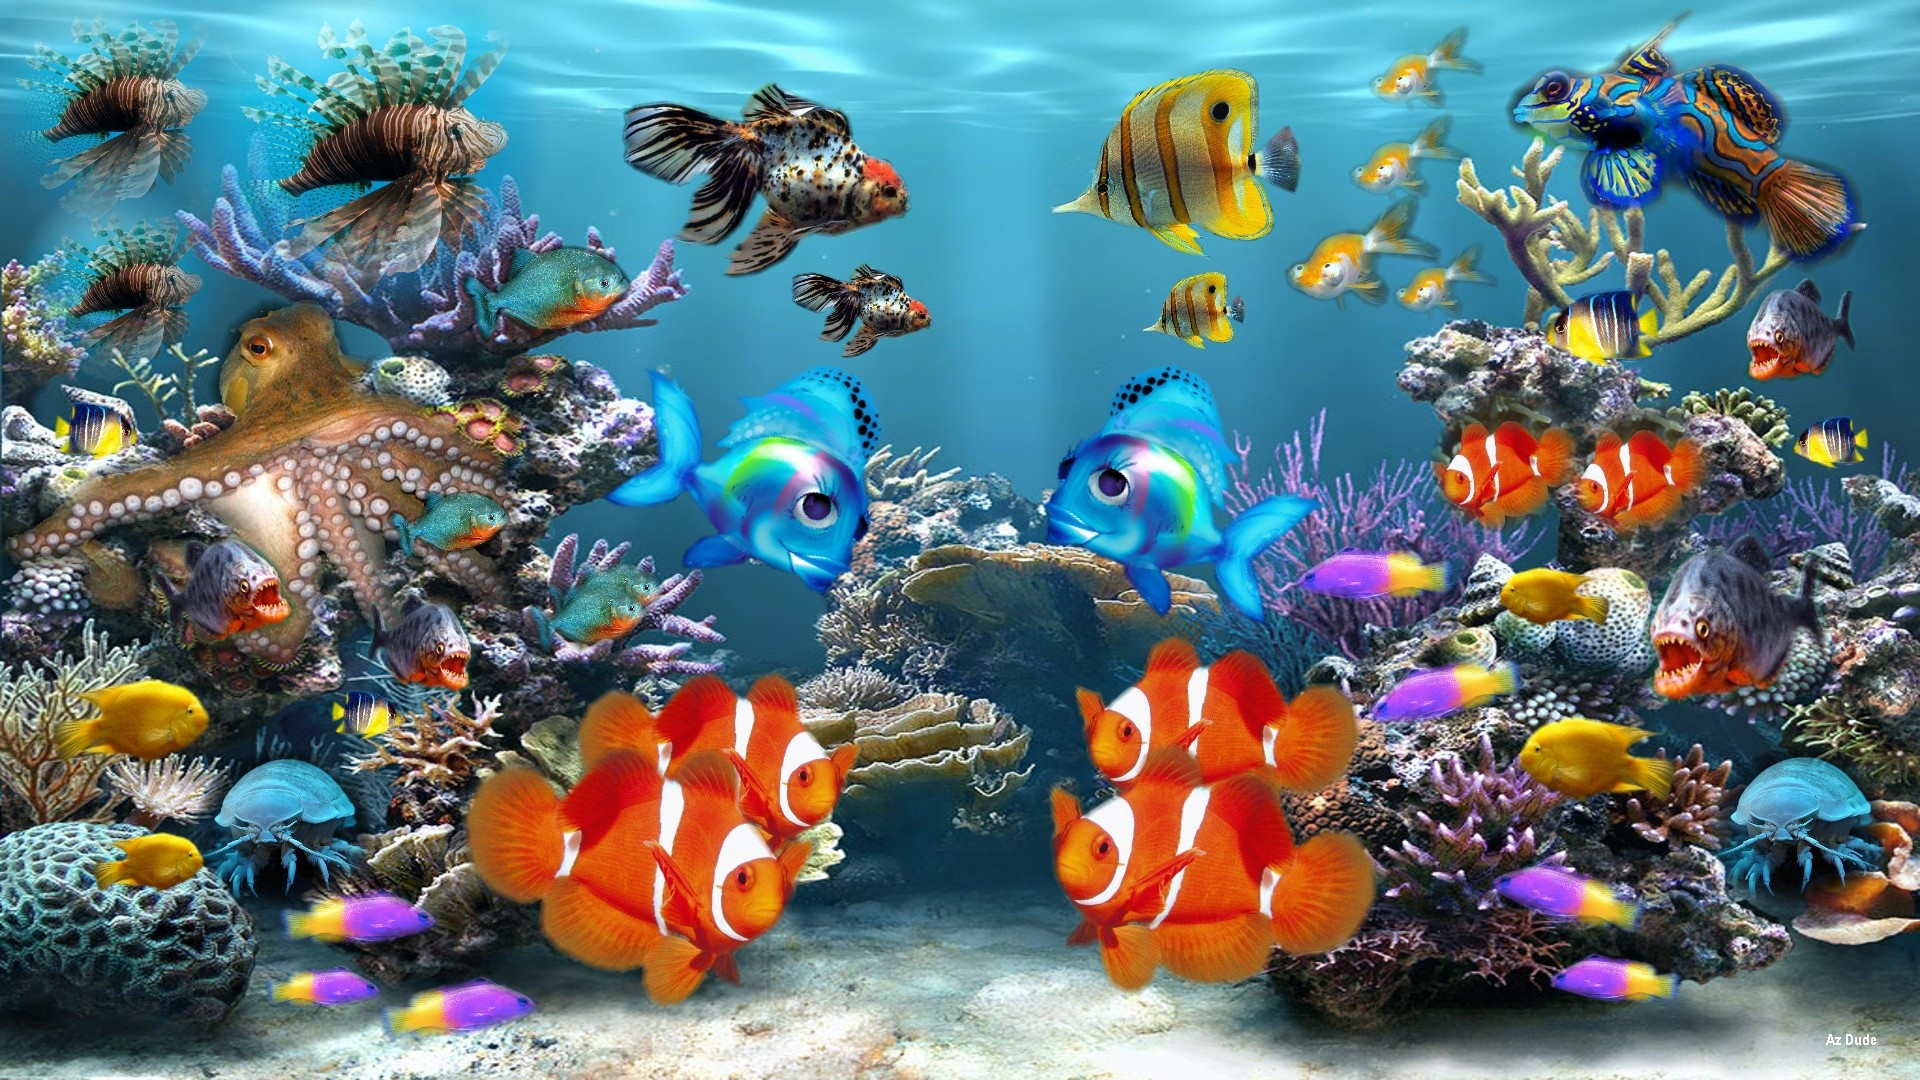 Aquarium fish tank download - Download Aquarium Wallpaper 1920x1080 Full Hd Wallpapers